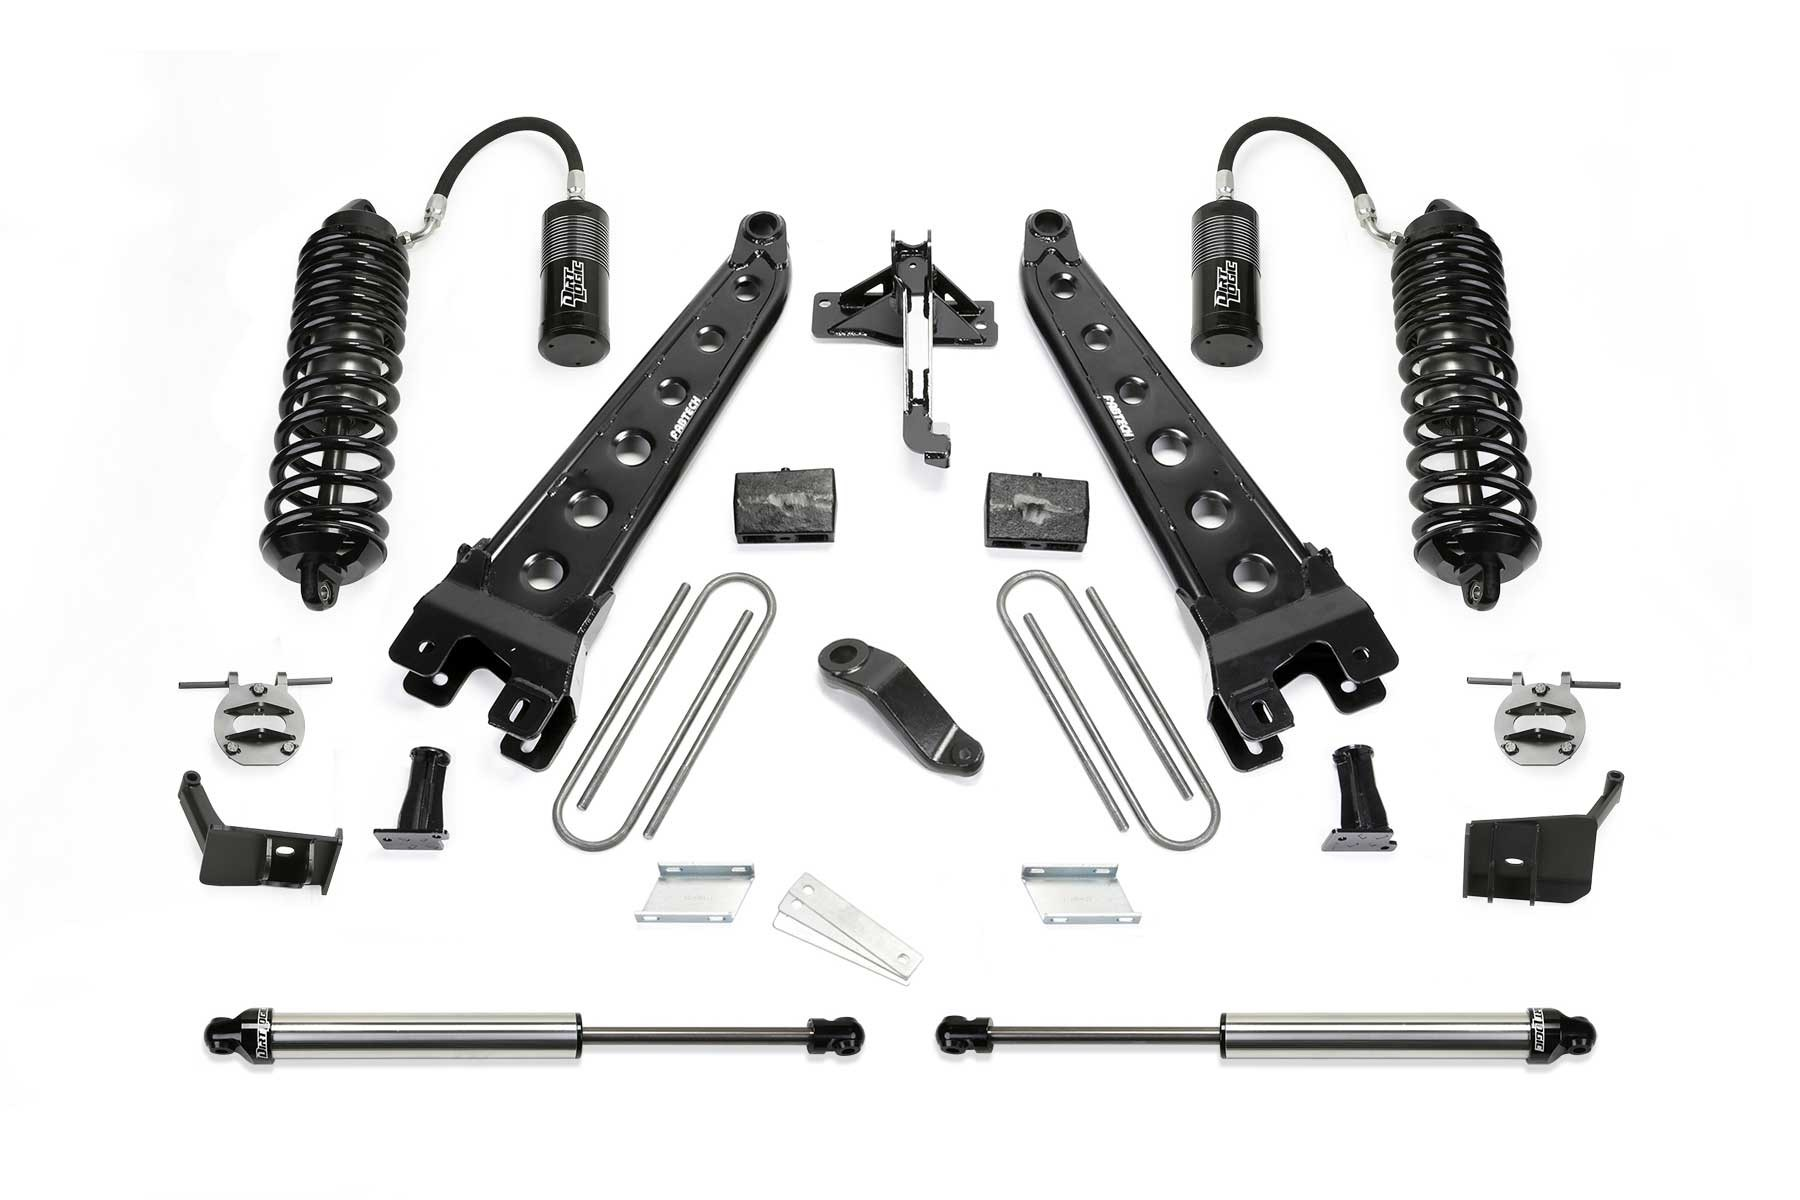 FABTECH 2018 FORD F450 / F550 4WD-6″ RADIUS ARM SYSTEM W/ FRONT DIRT LOGIC 4.0 RESI COILOVERS & REAR DIRT LOGIC 2.25 SHOCKS